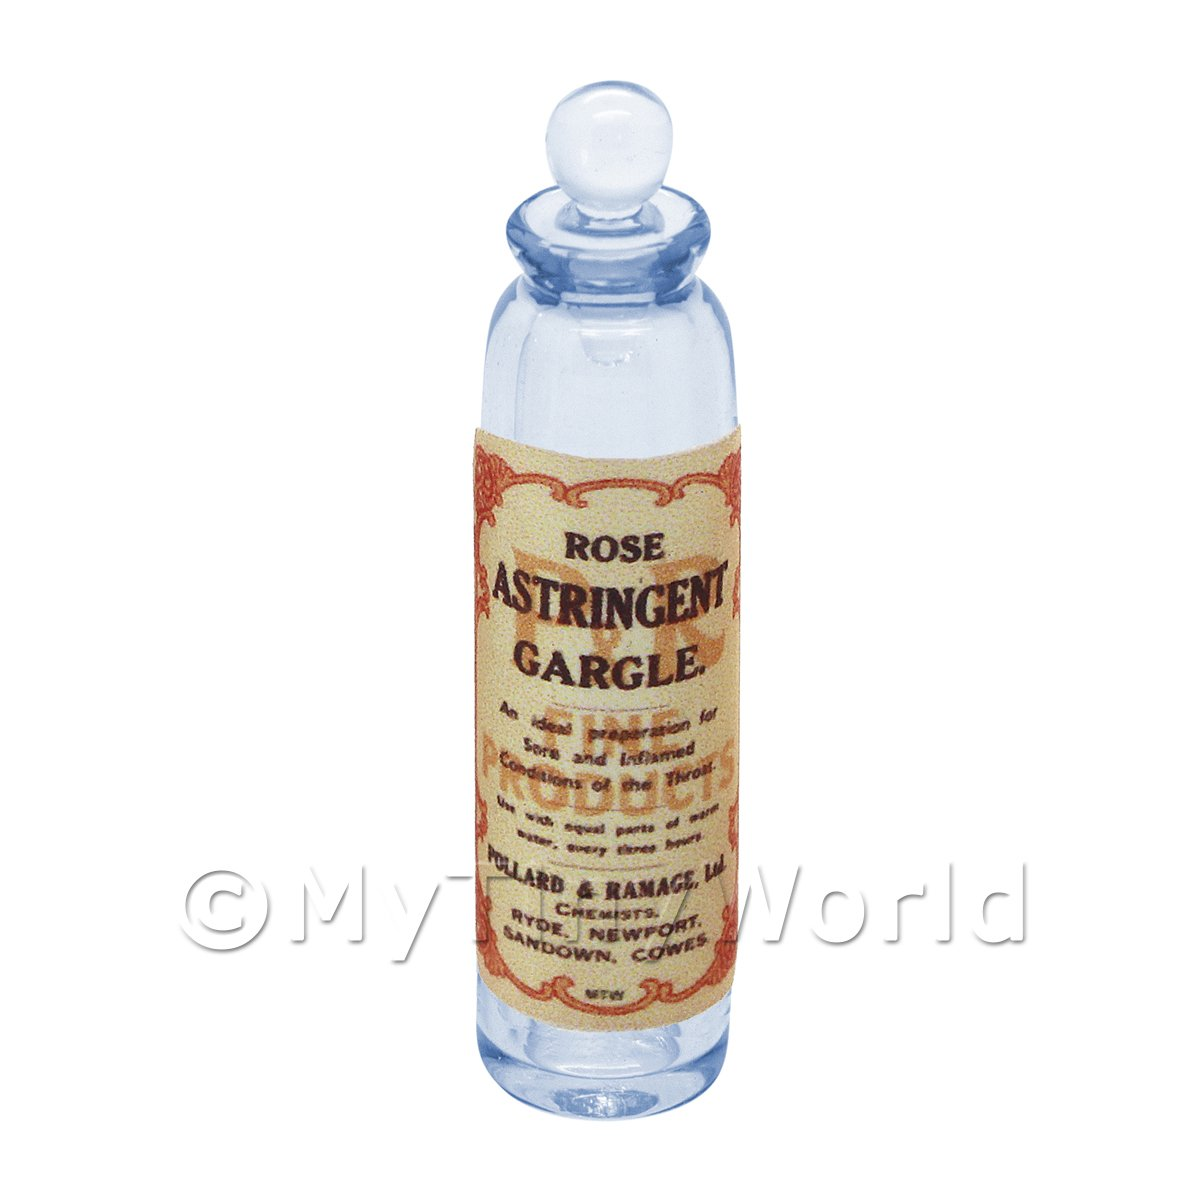 Miniature Rose Astringent Gargle Blue Glass Apothecary Bottle